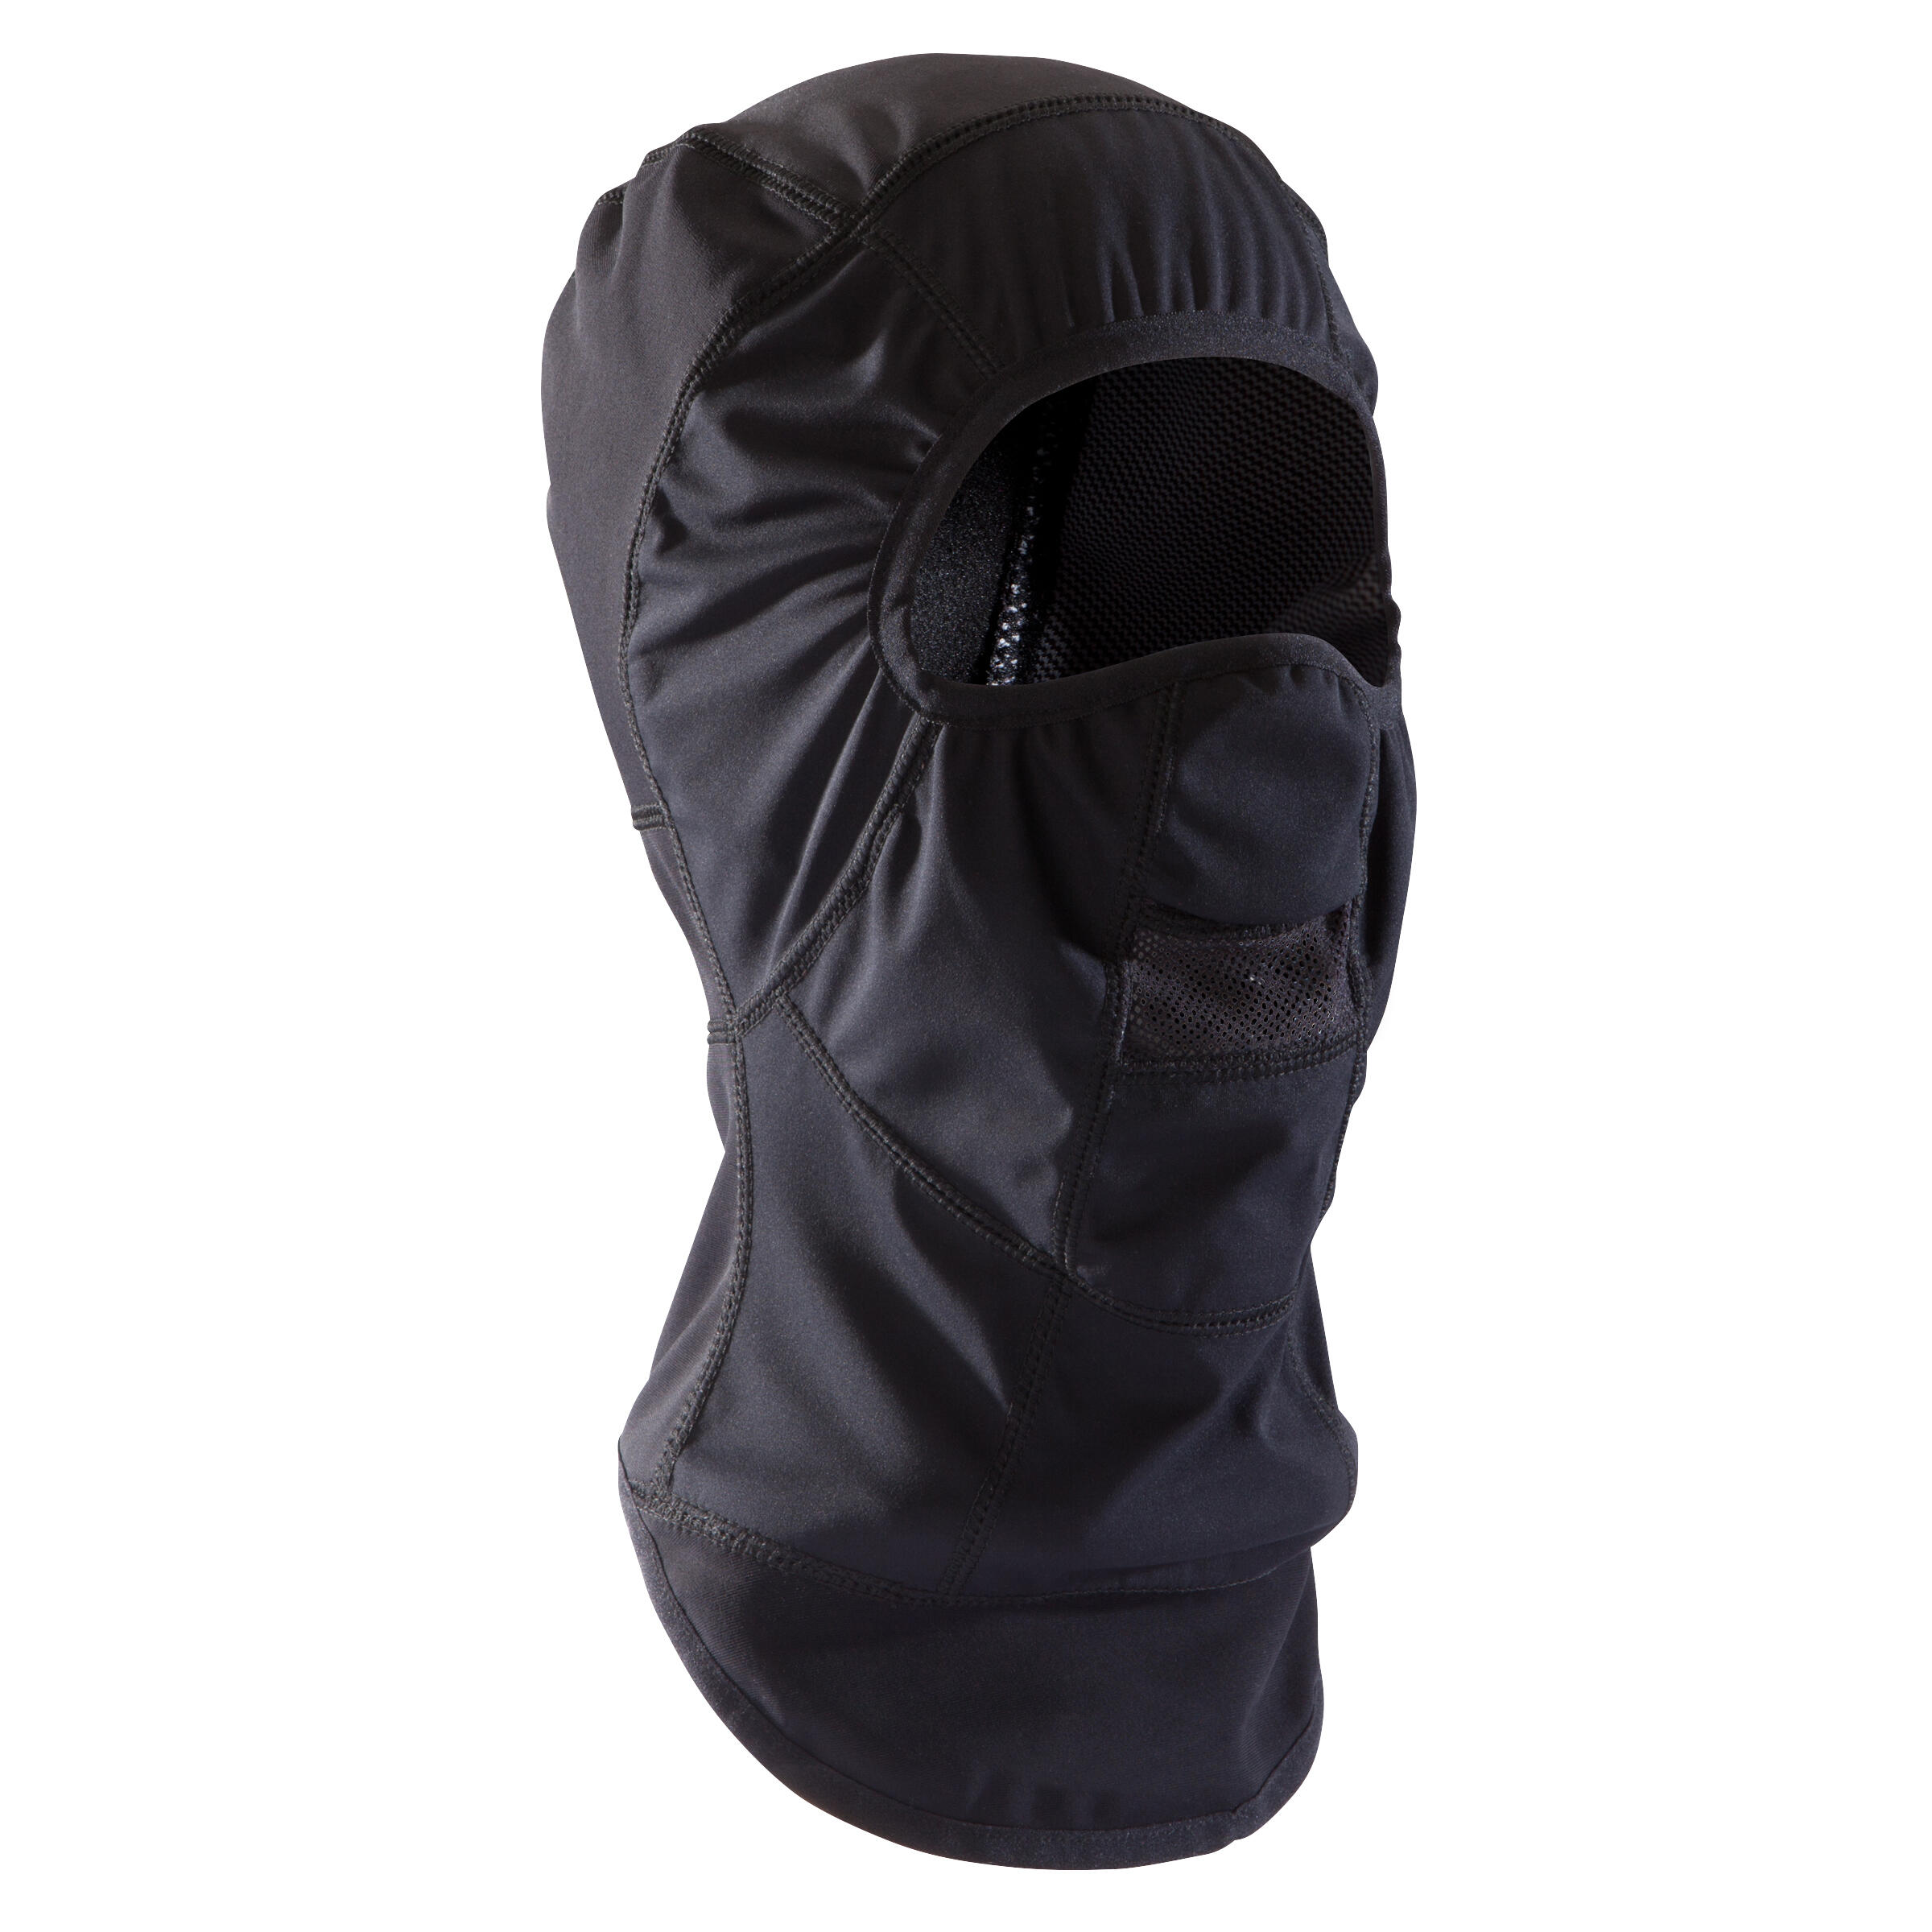 Windstopper Mountaineering Face Mask - Black